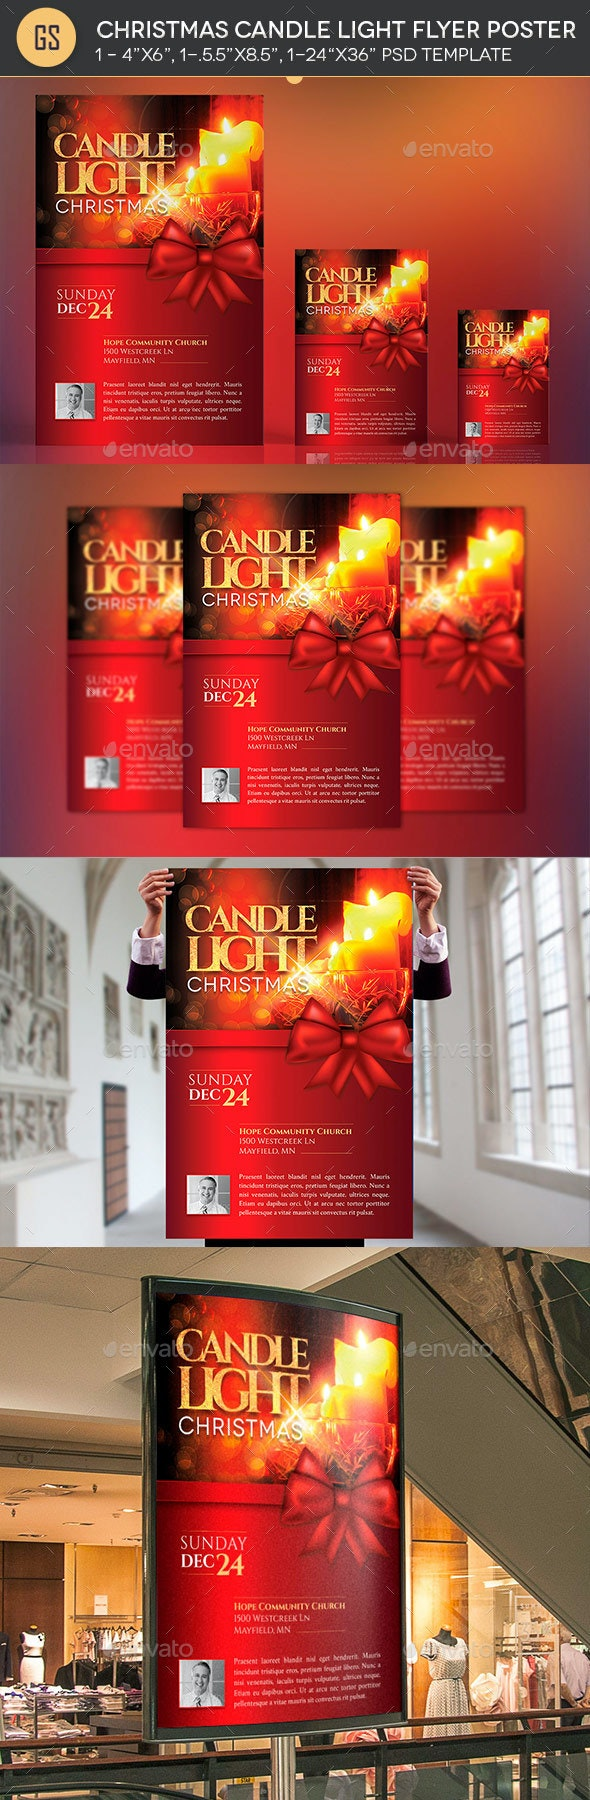 Christmas Candle Light Flyer Poster Template - Church Flyers